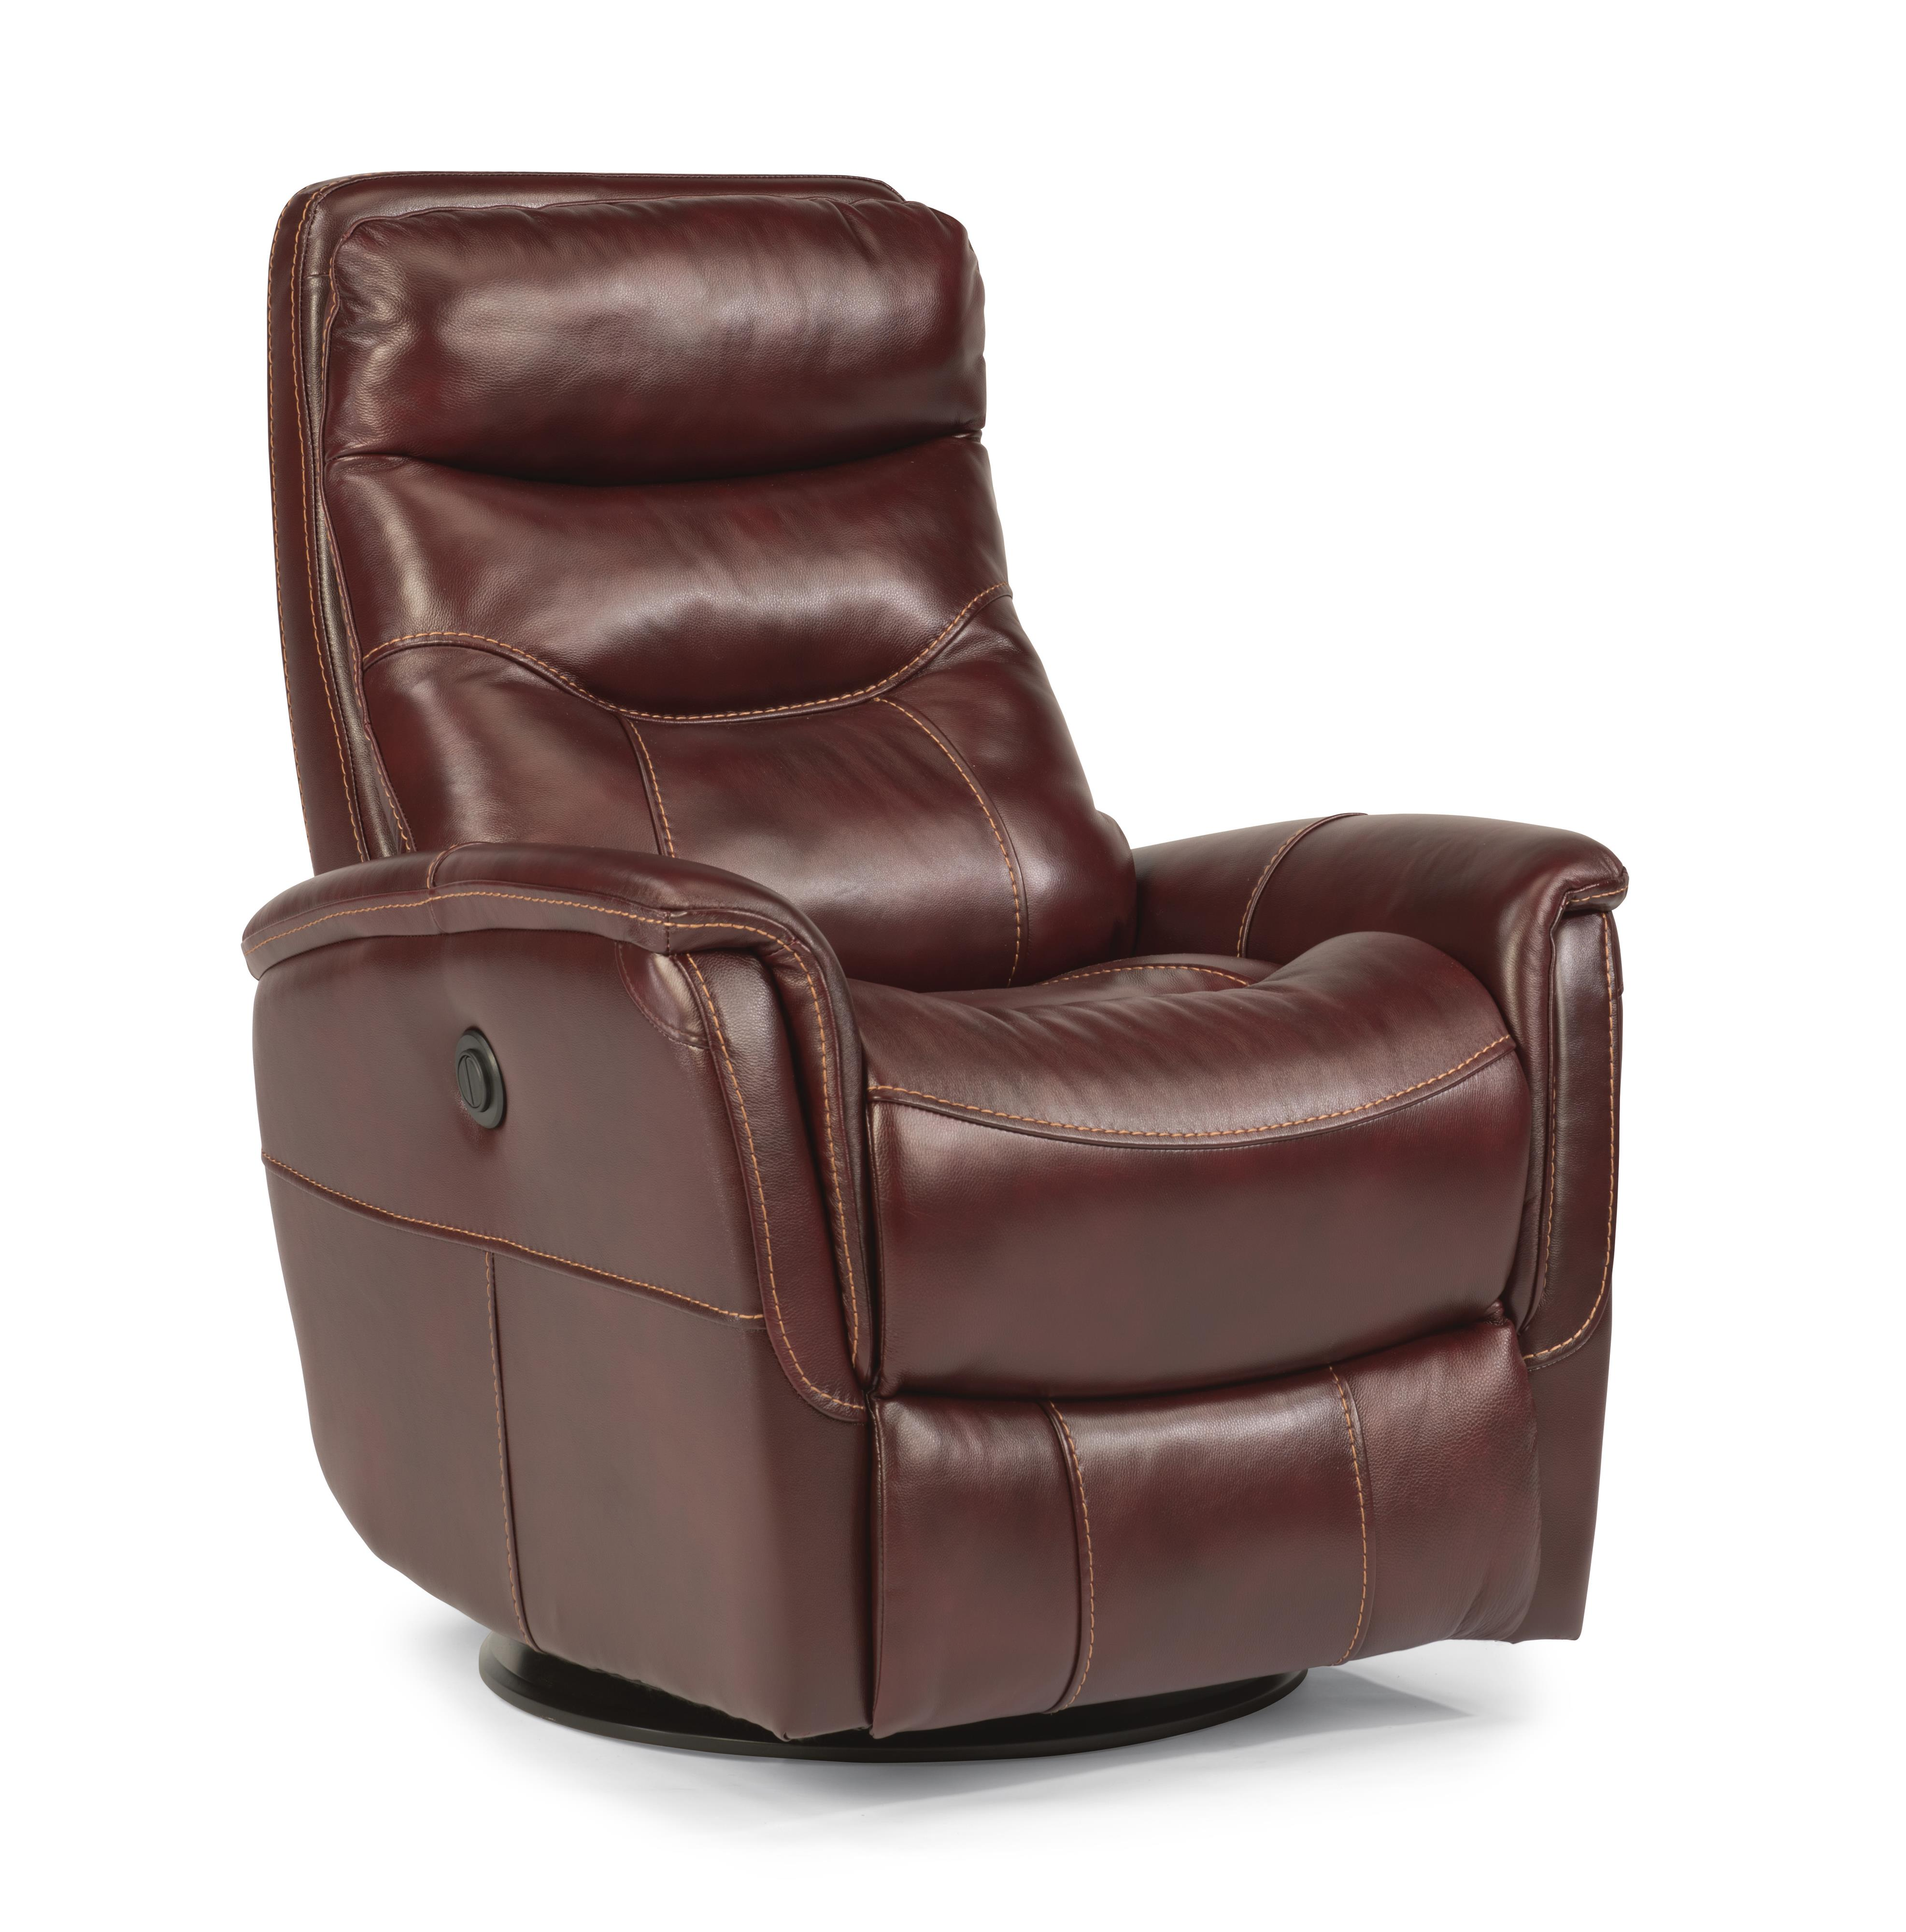 Leather Reclining Chairs Latitudes Go Anywhere Recliners Alden King Size Power Swivel Glider Recliner By Flexsteel At Wayside Furniture